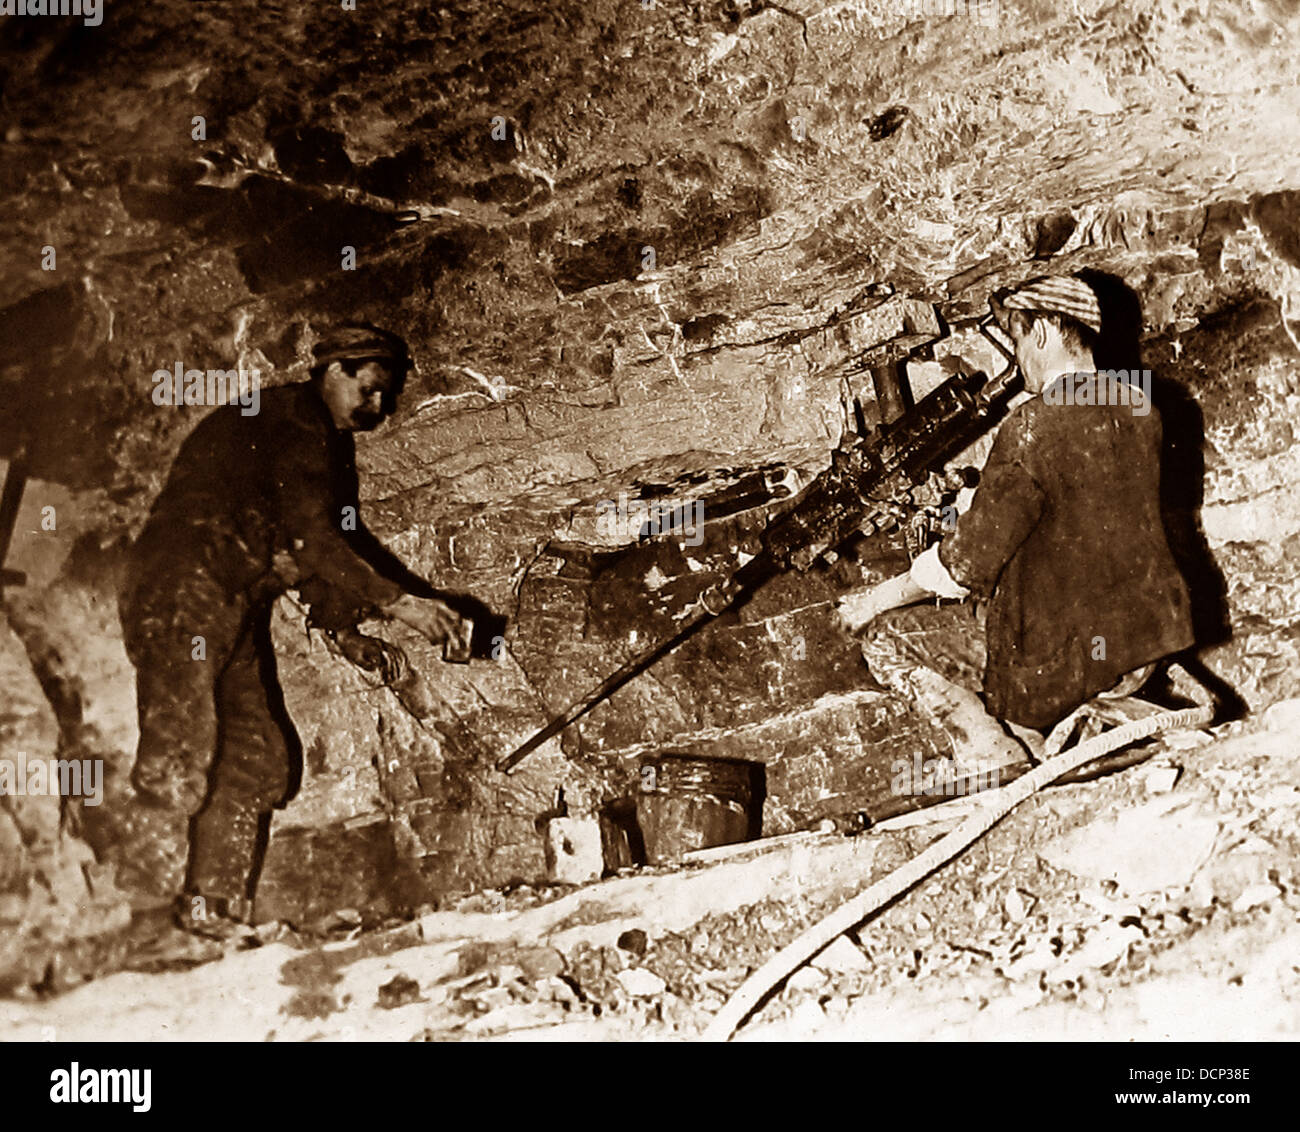 Coal miners drilling holes with a mechanised drill early 1900s - Stock Image